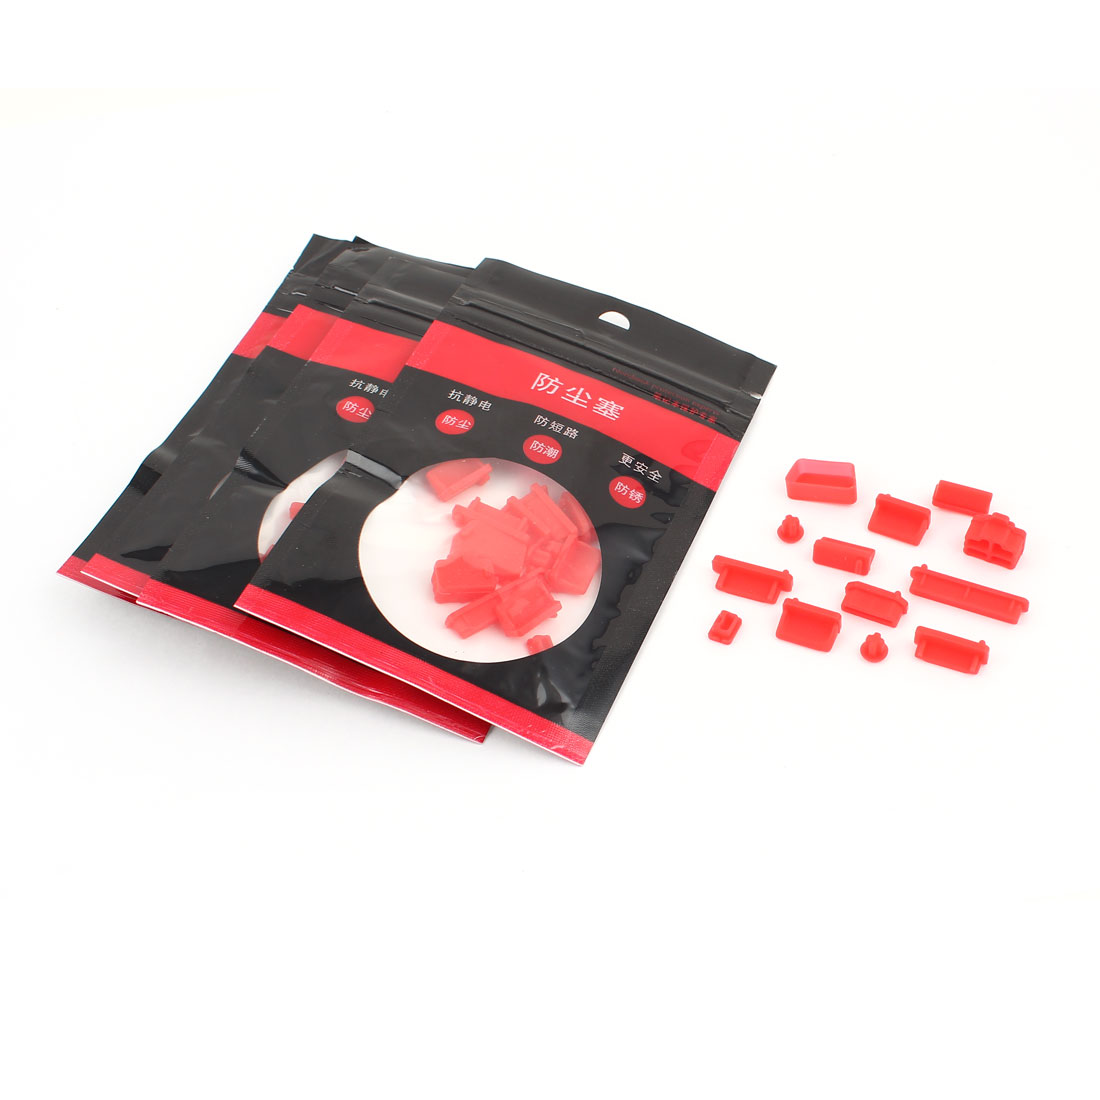 5 Set 13 in 1 Red Silicon Anti Dust Connector Cover Stopper for MacBook Pro Air Laptop Notebook